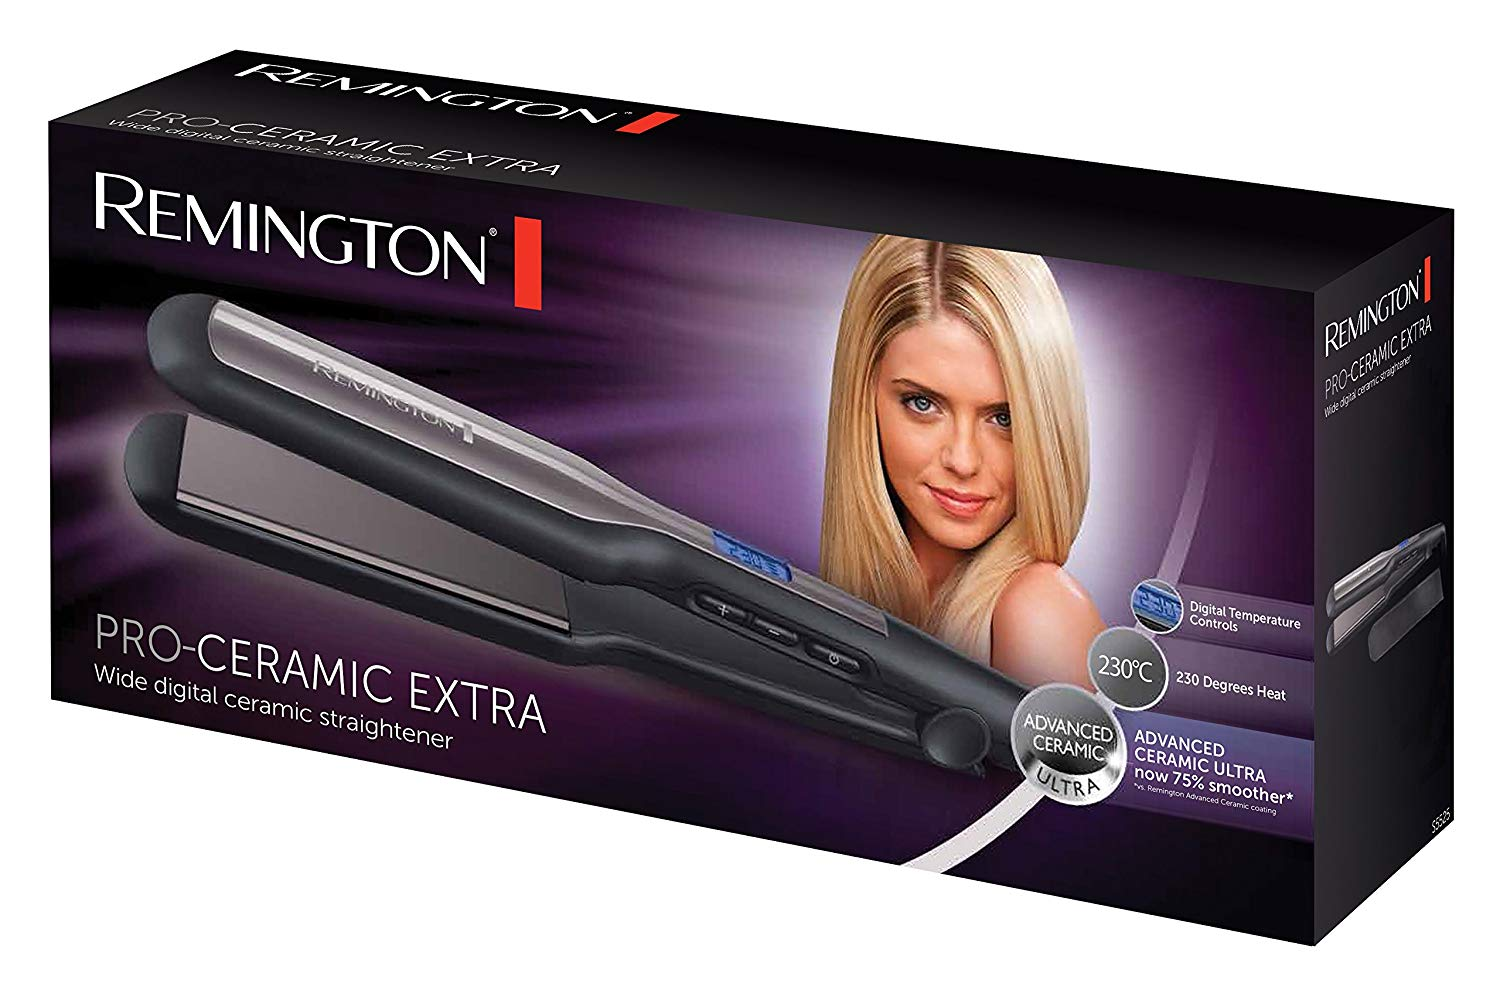 remington pro ceramic extra